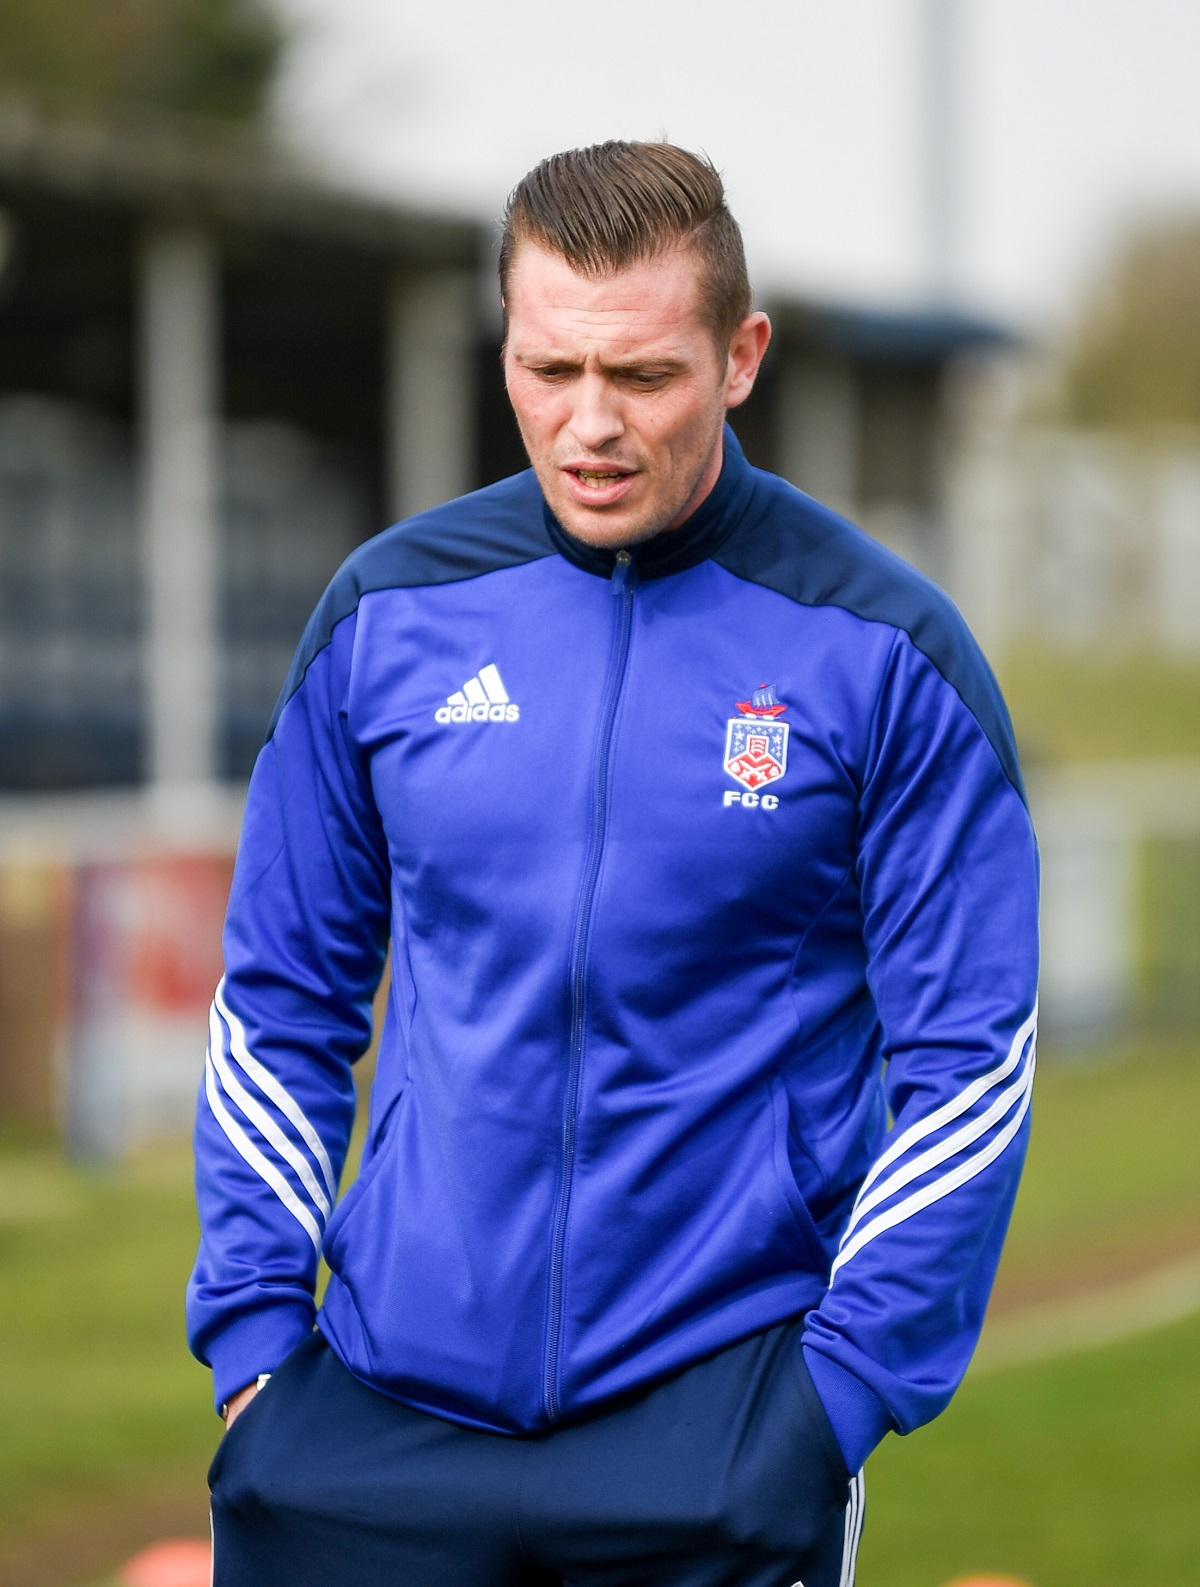 Former FC Clacton manager Kieron Shelley, who is taking over at Harwich and Parkeston